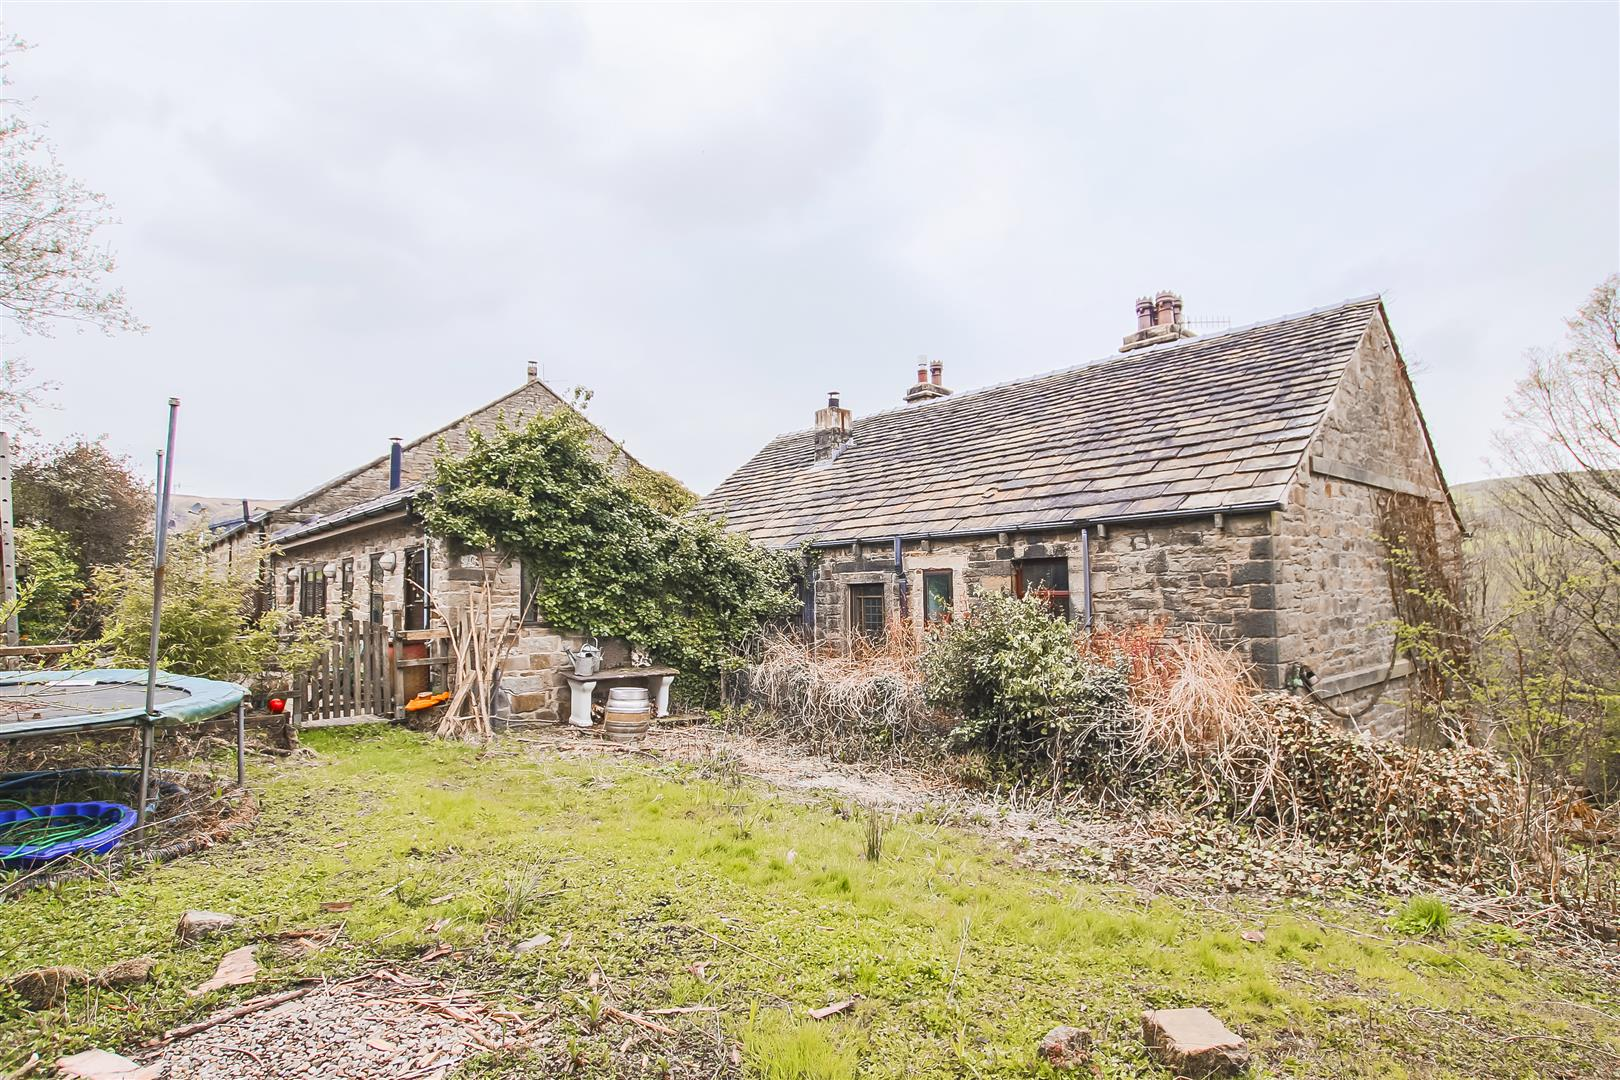 5 Bedroom Farmhouse For Sale - Image 69